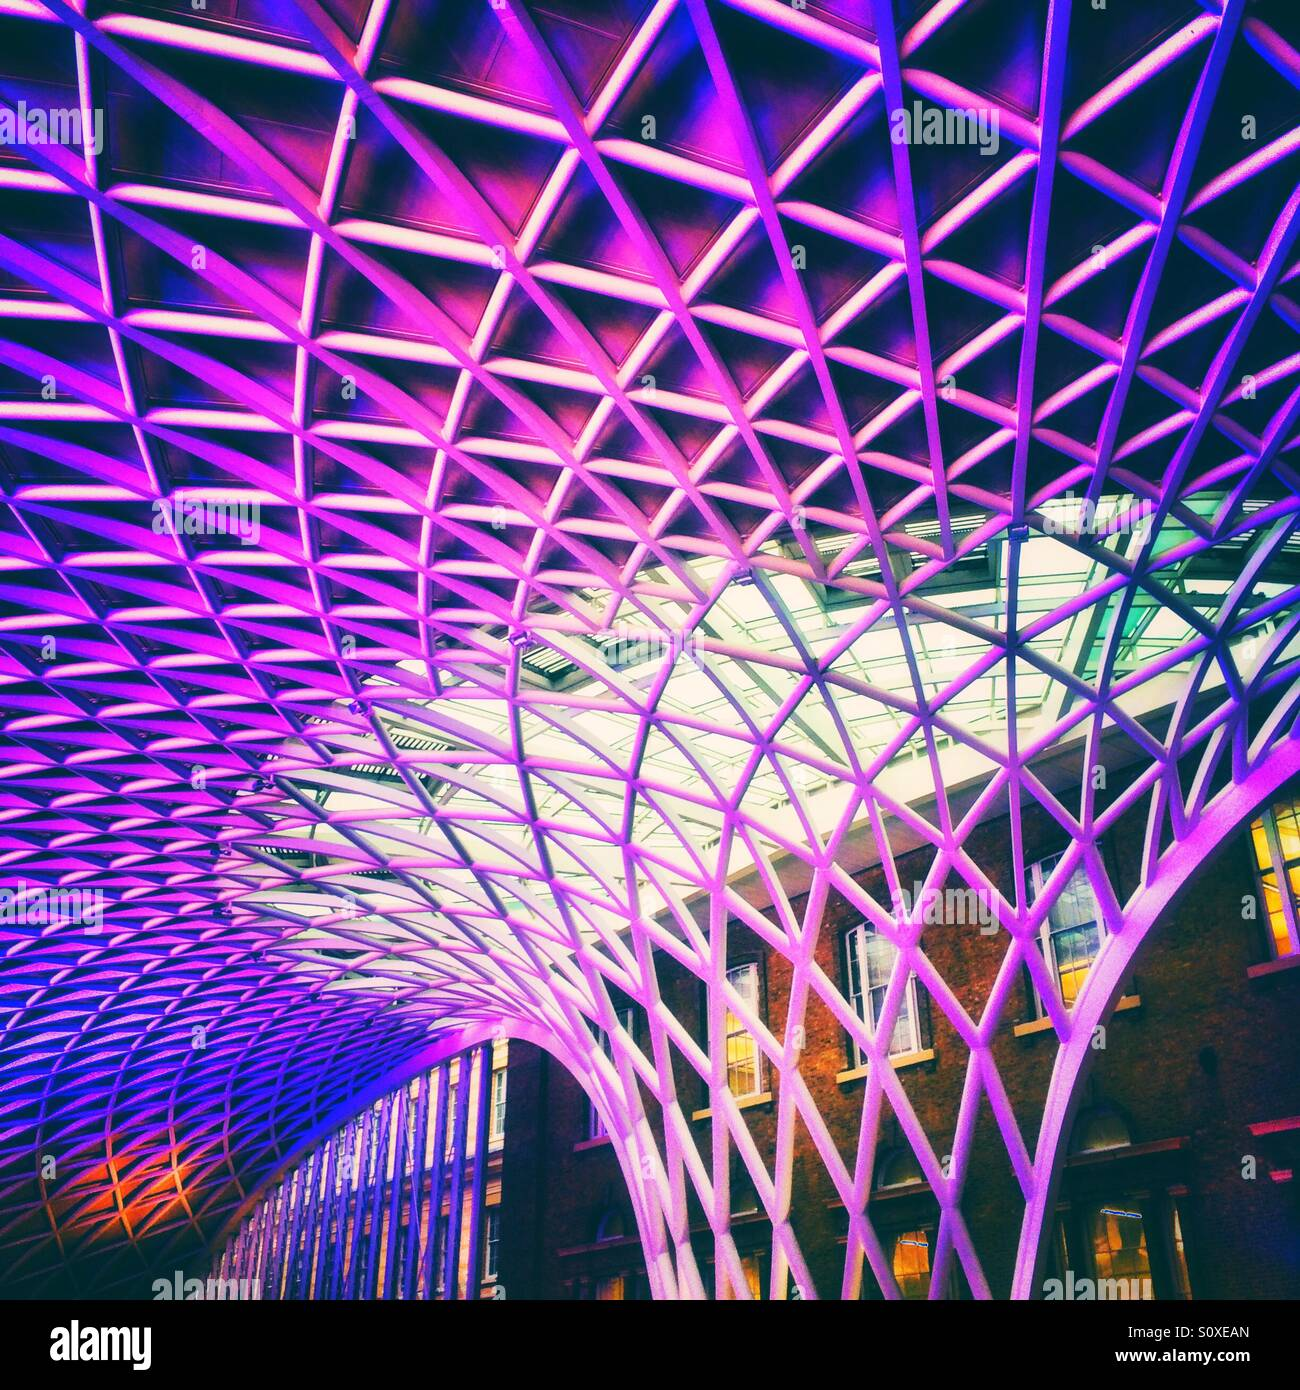 Architectural feature at Kings Cross Station London - Stock Image